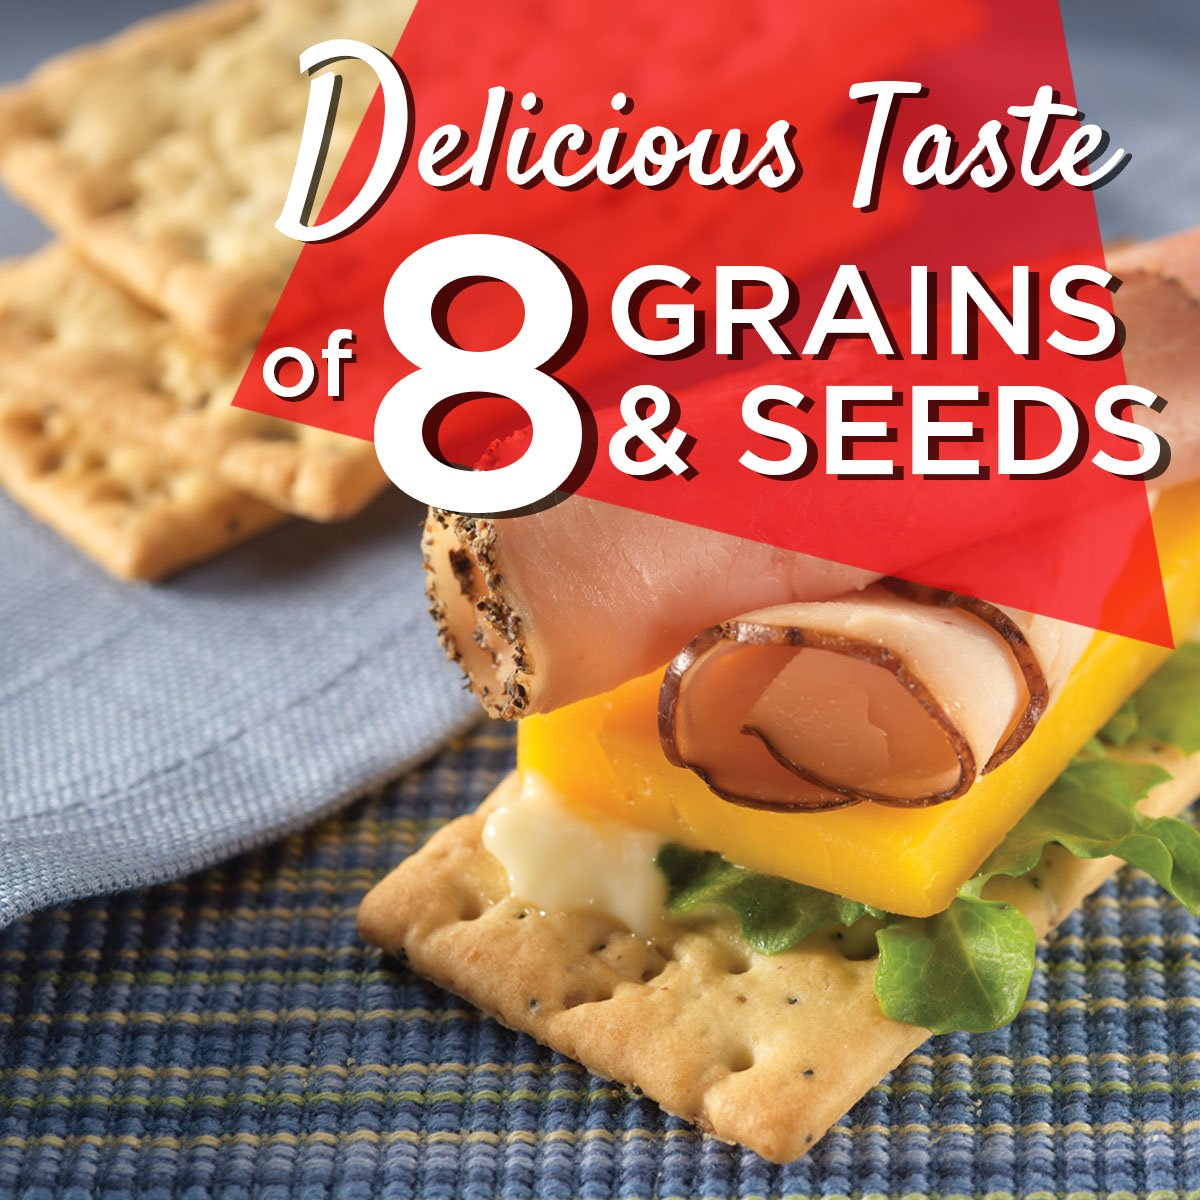 Vinta Crackers, Original – Delicious Bold Taste of 8 Grains and Seeds – No Artificial Flavors, No Cholesterol, Peanut Free - Delicious Plain or Topped, 8.8-ounce. (Pack of 12) by Dare (Image #4)